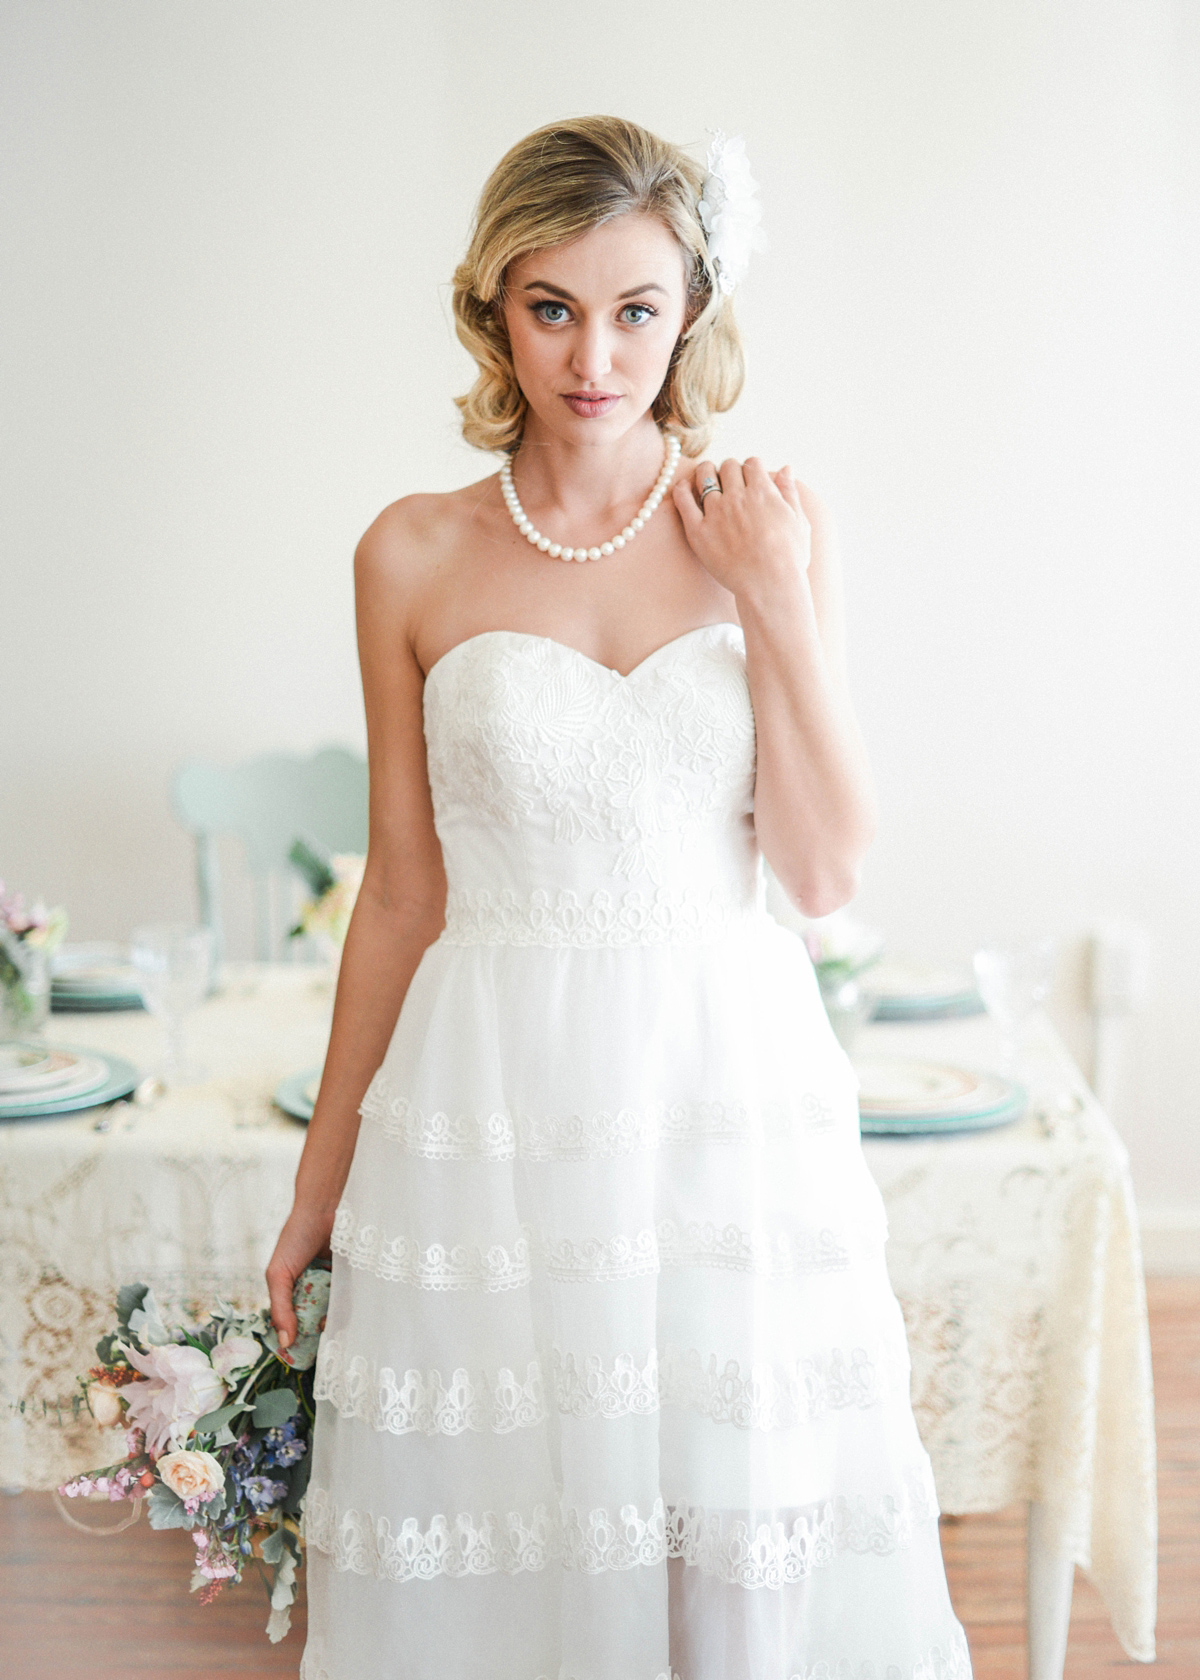 Anchored-in-Love-Spring-Focus-On-the-Coast-Weddings-Styled-Shoot-1286